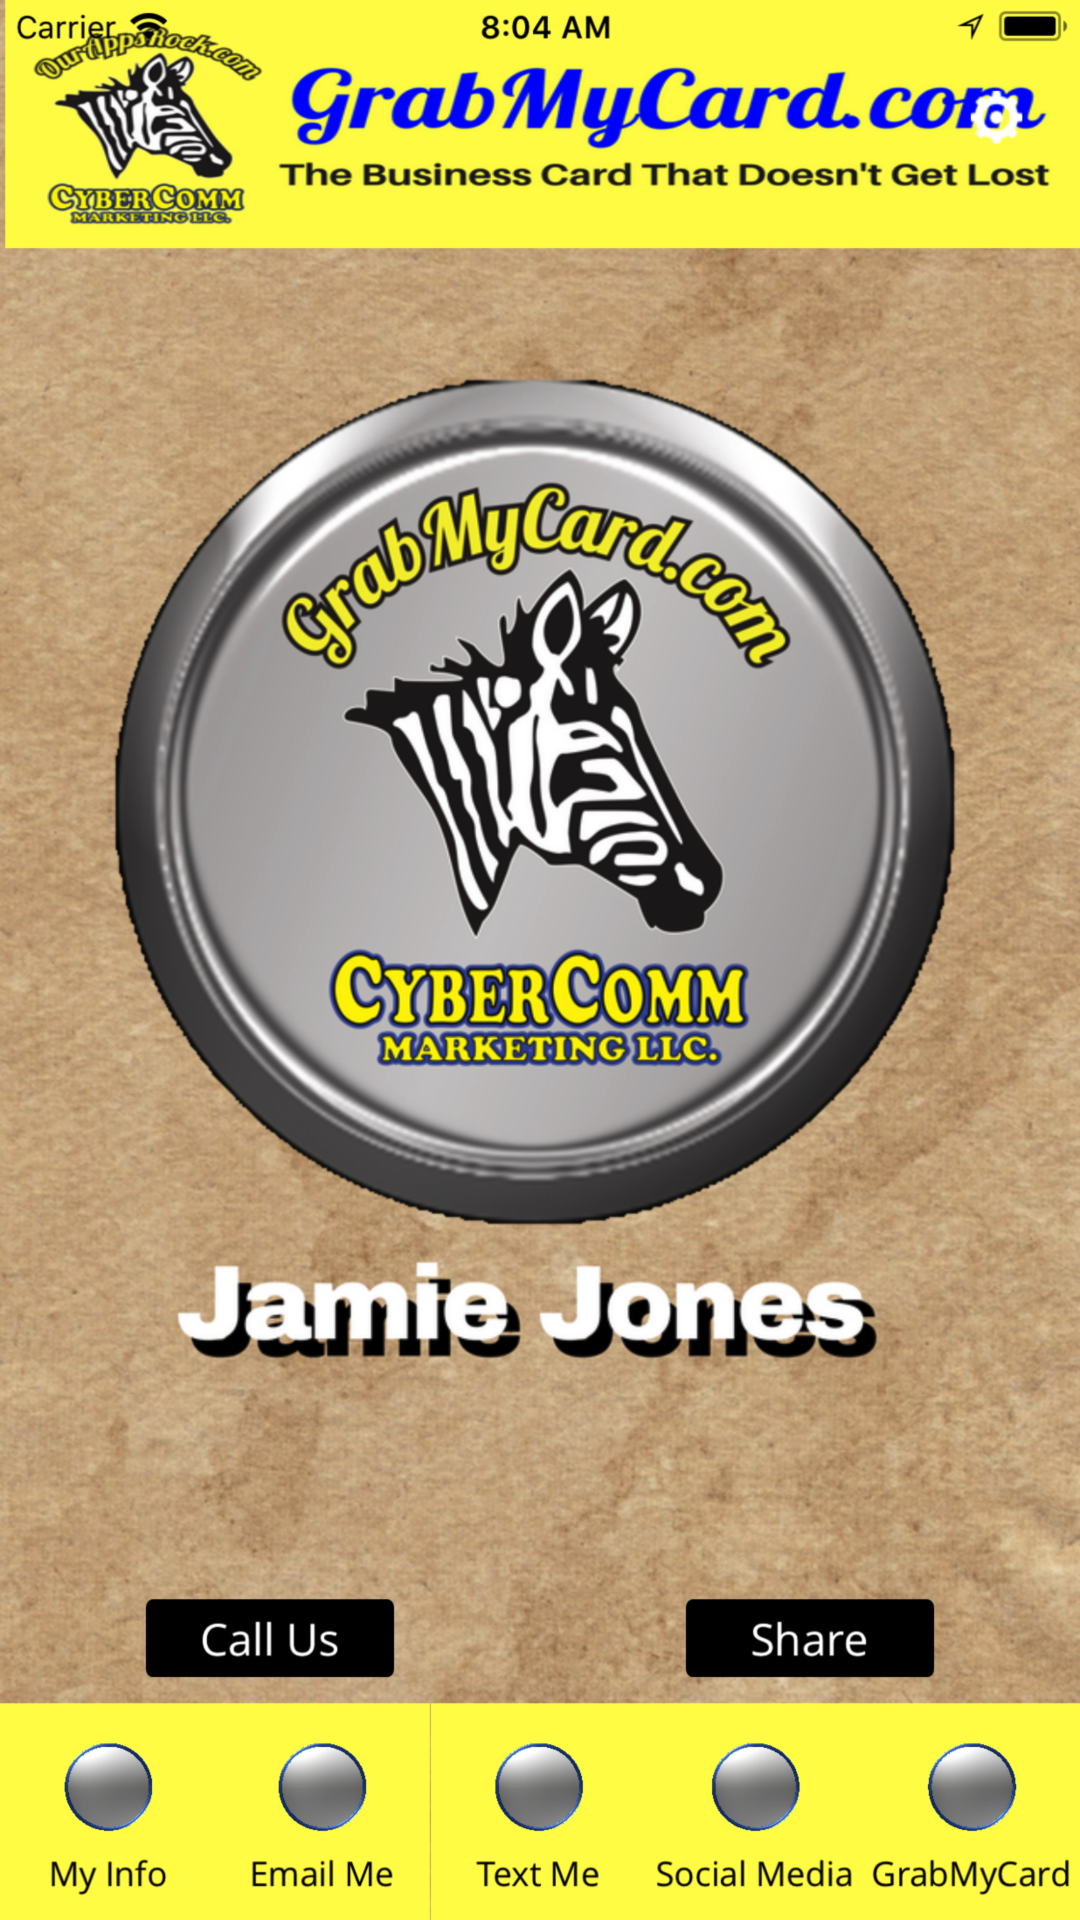 Jamie jones digital business card from grabmycard cybercomm jamie jones digital business card from starkville ms reheart Image collections